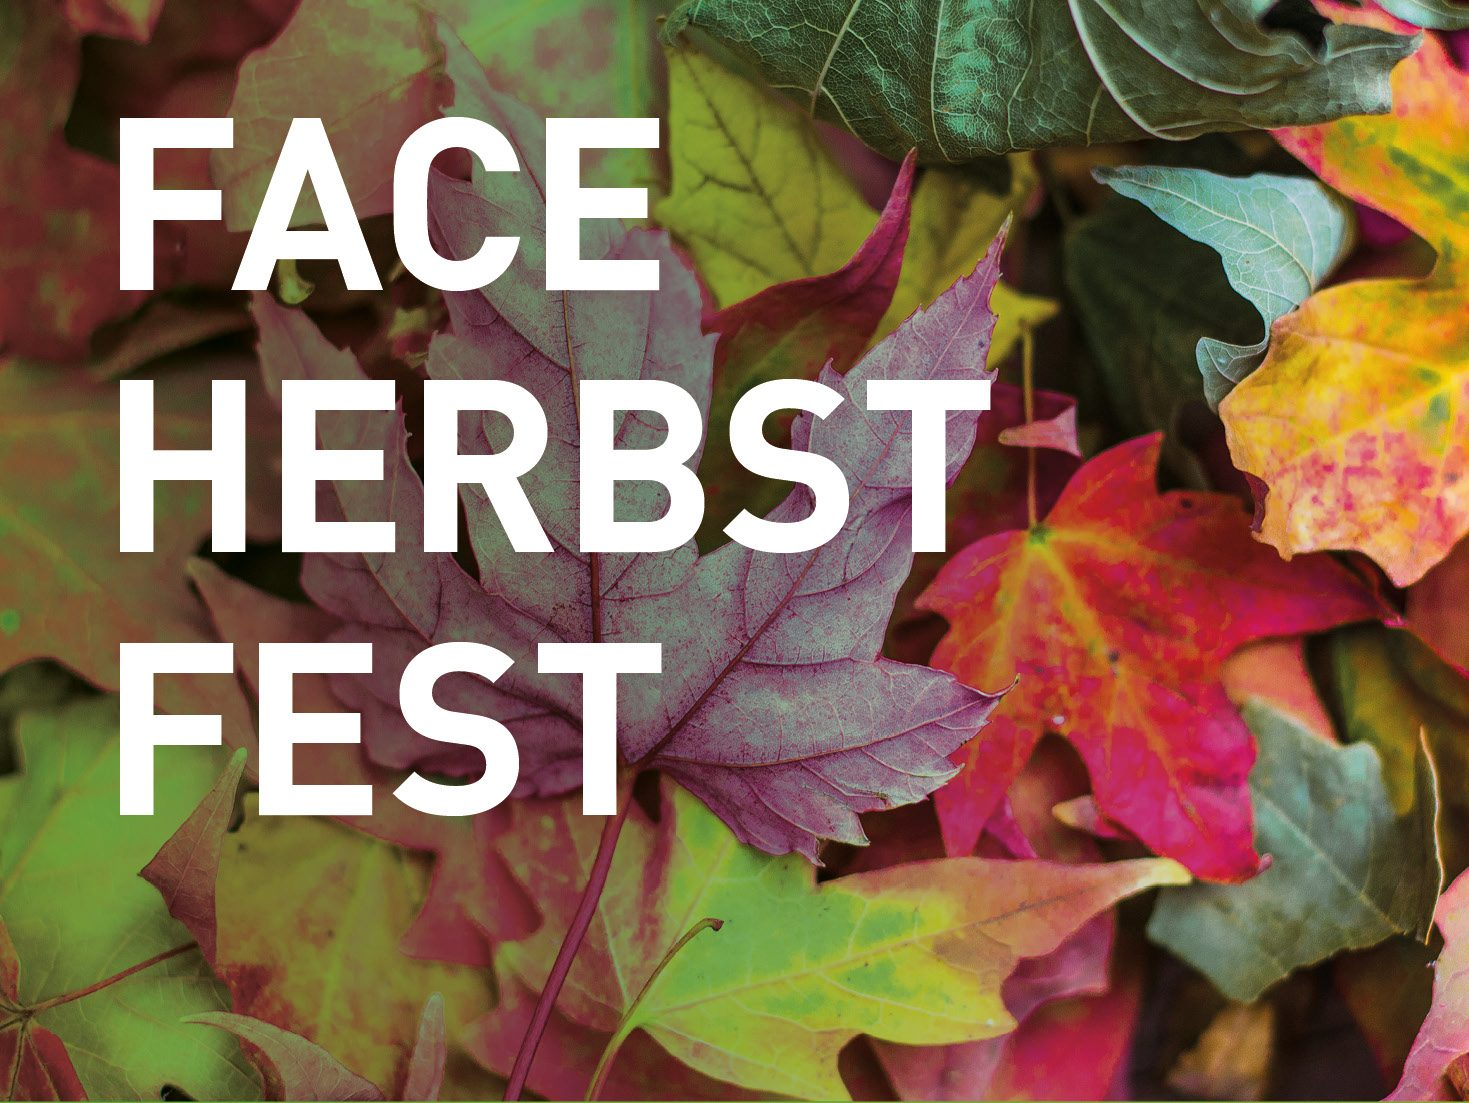 FACE Herbstfest am 13.9.19